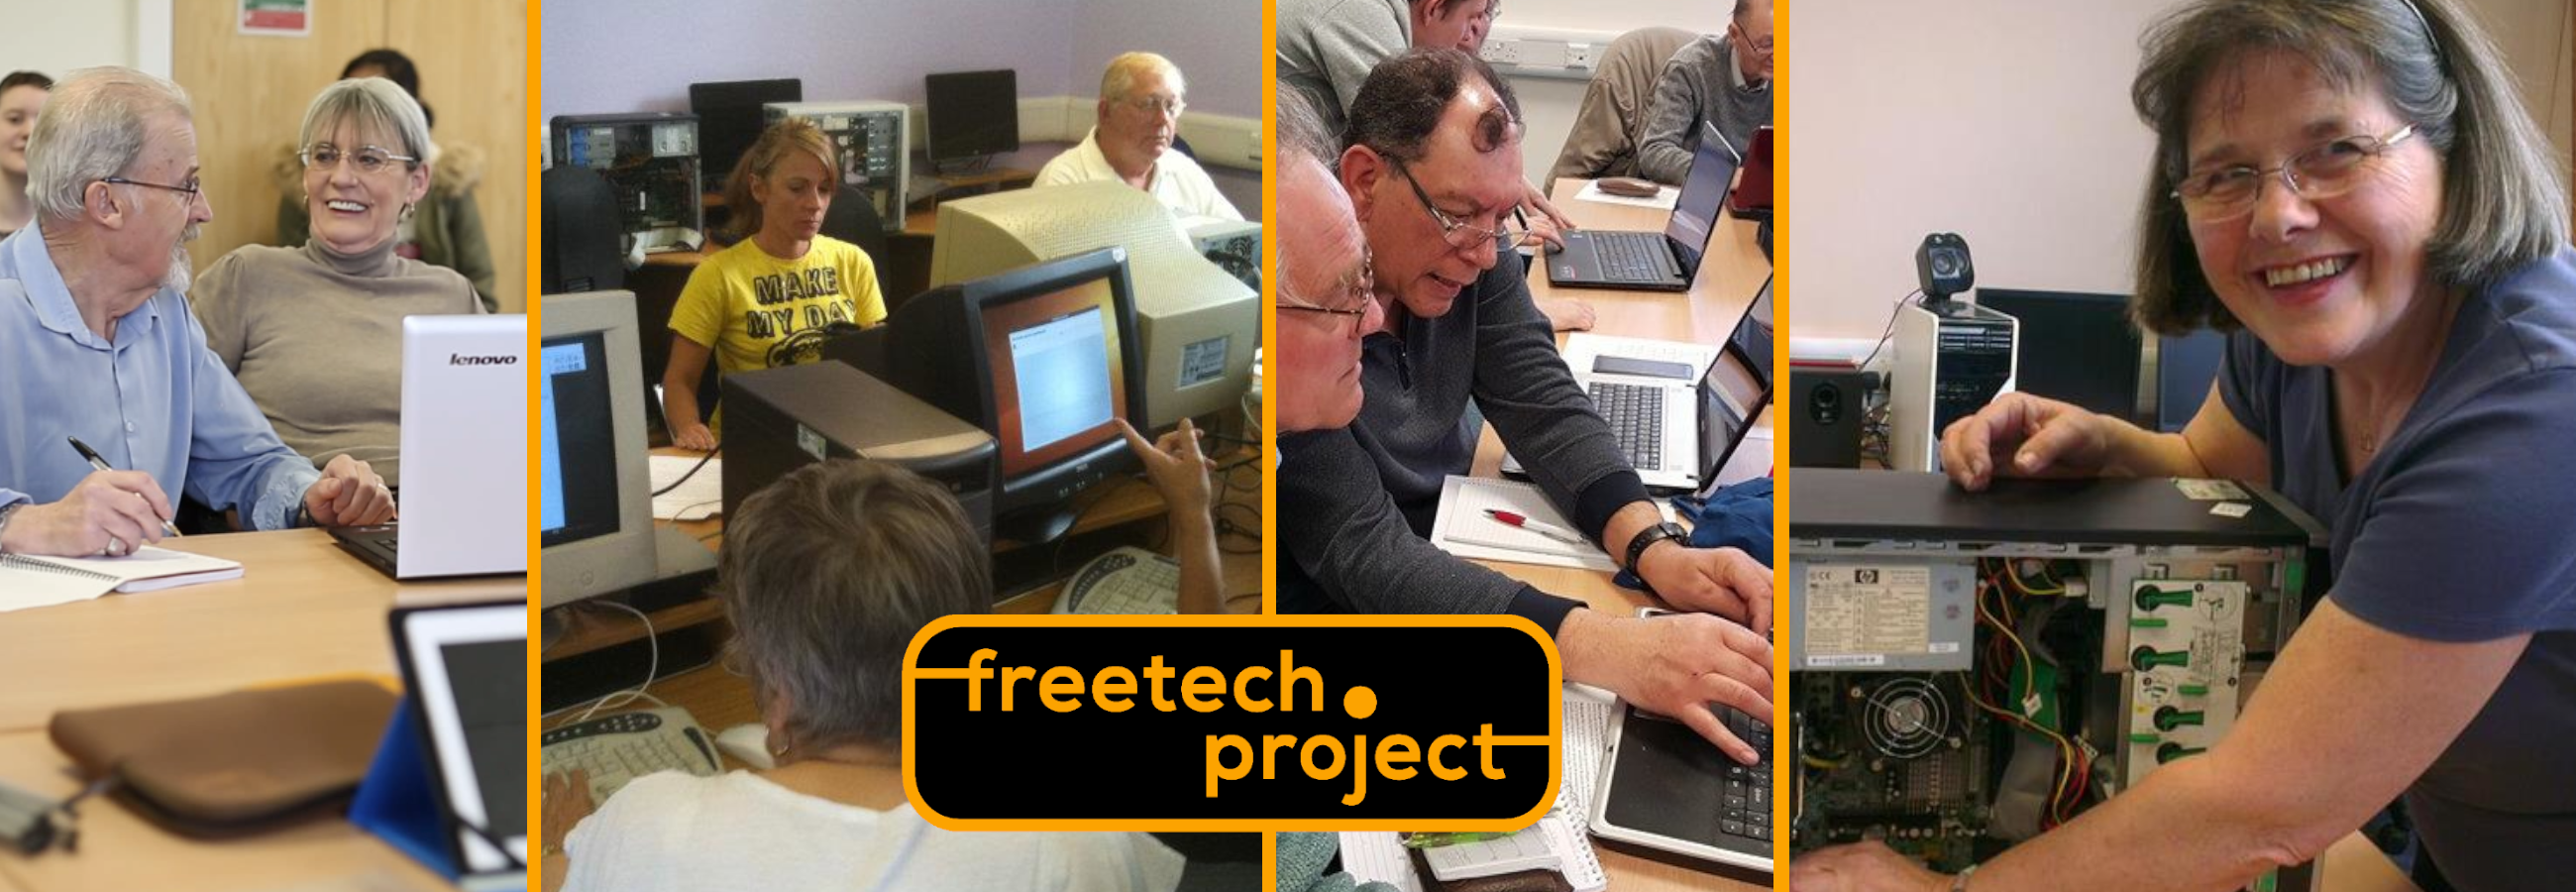 FreeTech Project